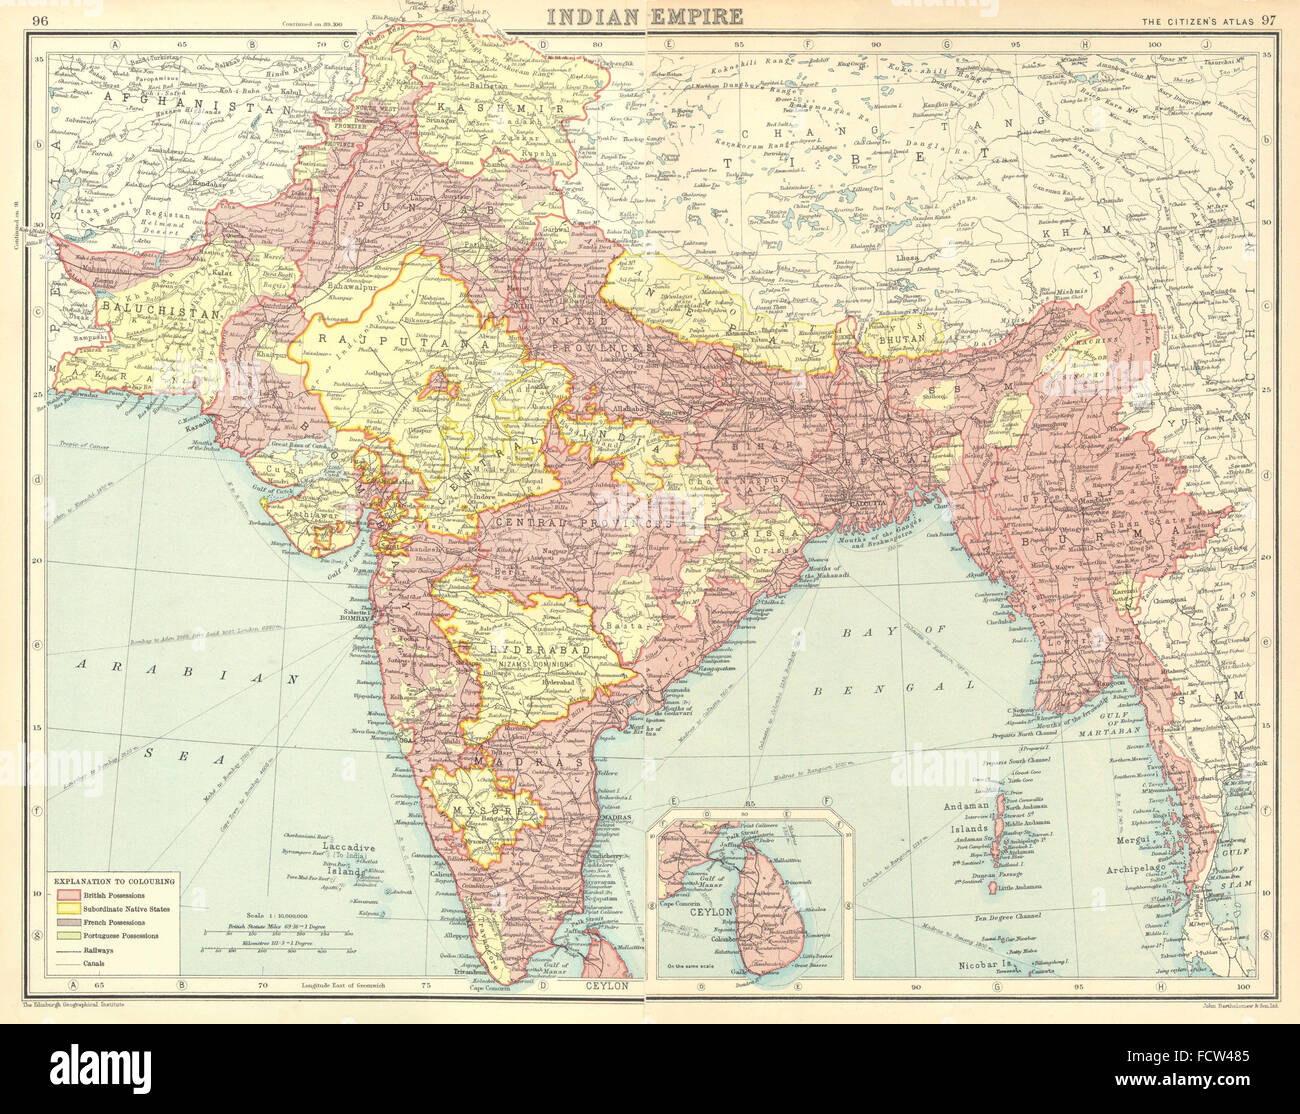 british-india-showing-native-states-french-portuguese-possessions-FCW485.jpg